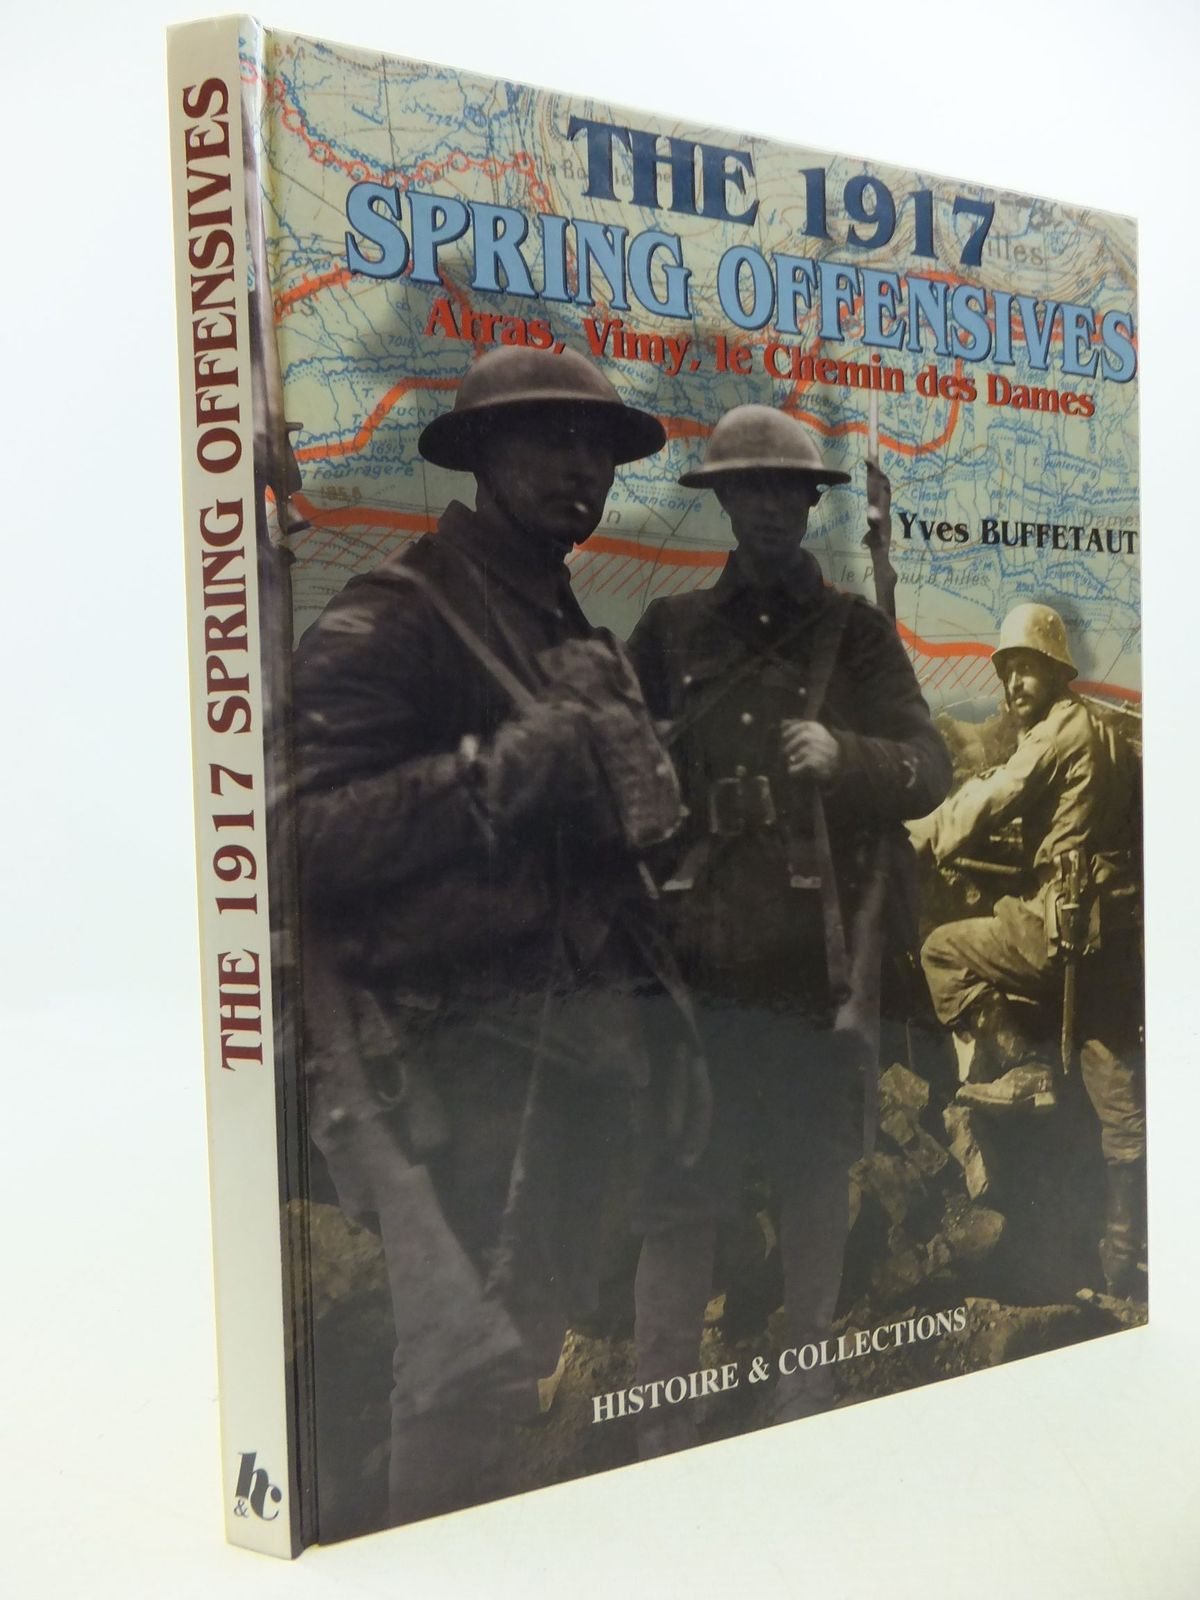 Photo of THE 1917 SPRING OFFENSIVES ARRAS, VIMY, LE CHEMIN DES DAMES written by Buffetaut, Yves Lepretre, Bernard published by Histoire & Collections (STOCK CODE: 1710088)  for sale by Stella & Rose's Books